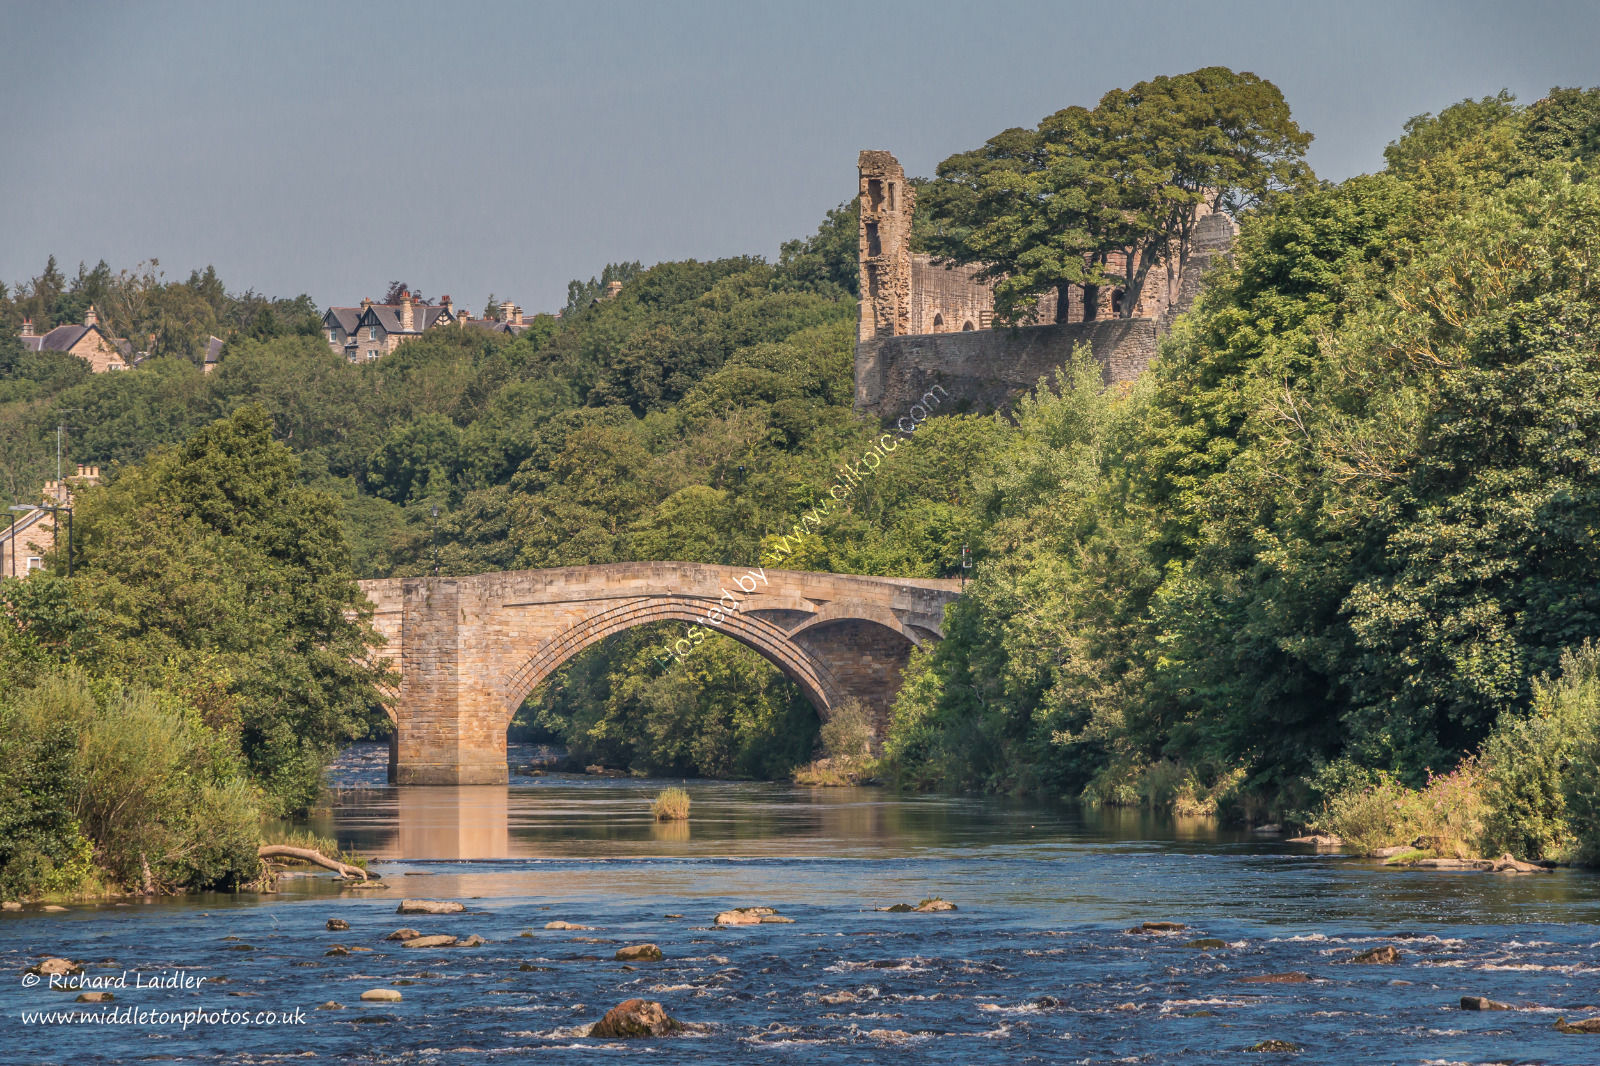 The River Tees, County Bridge and the castle, Barnard Castle, in Summer